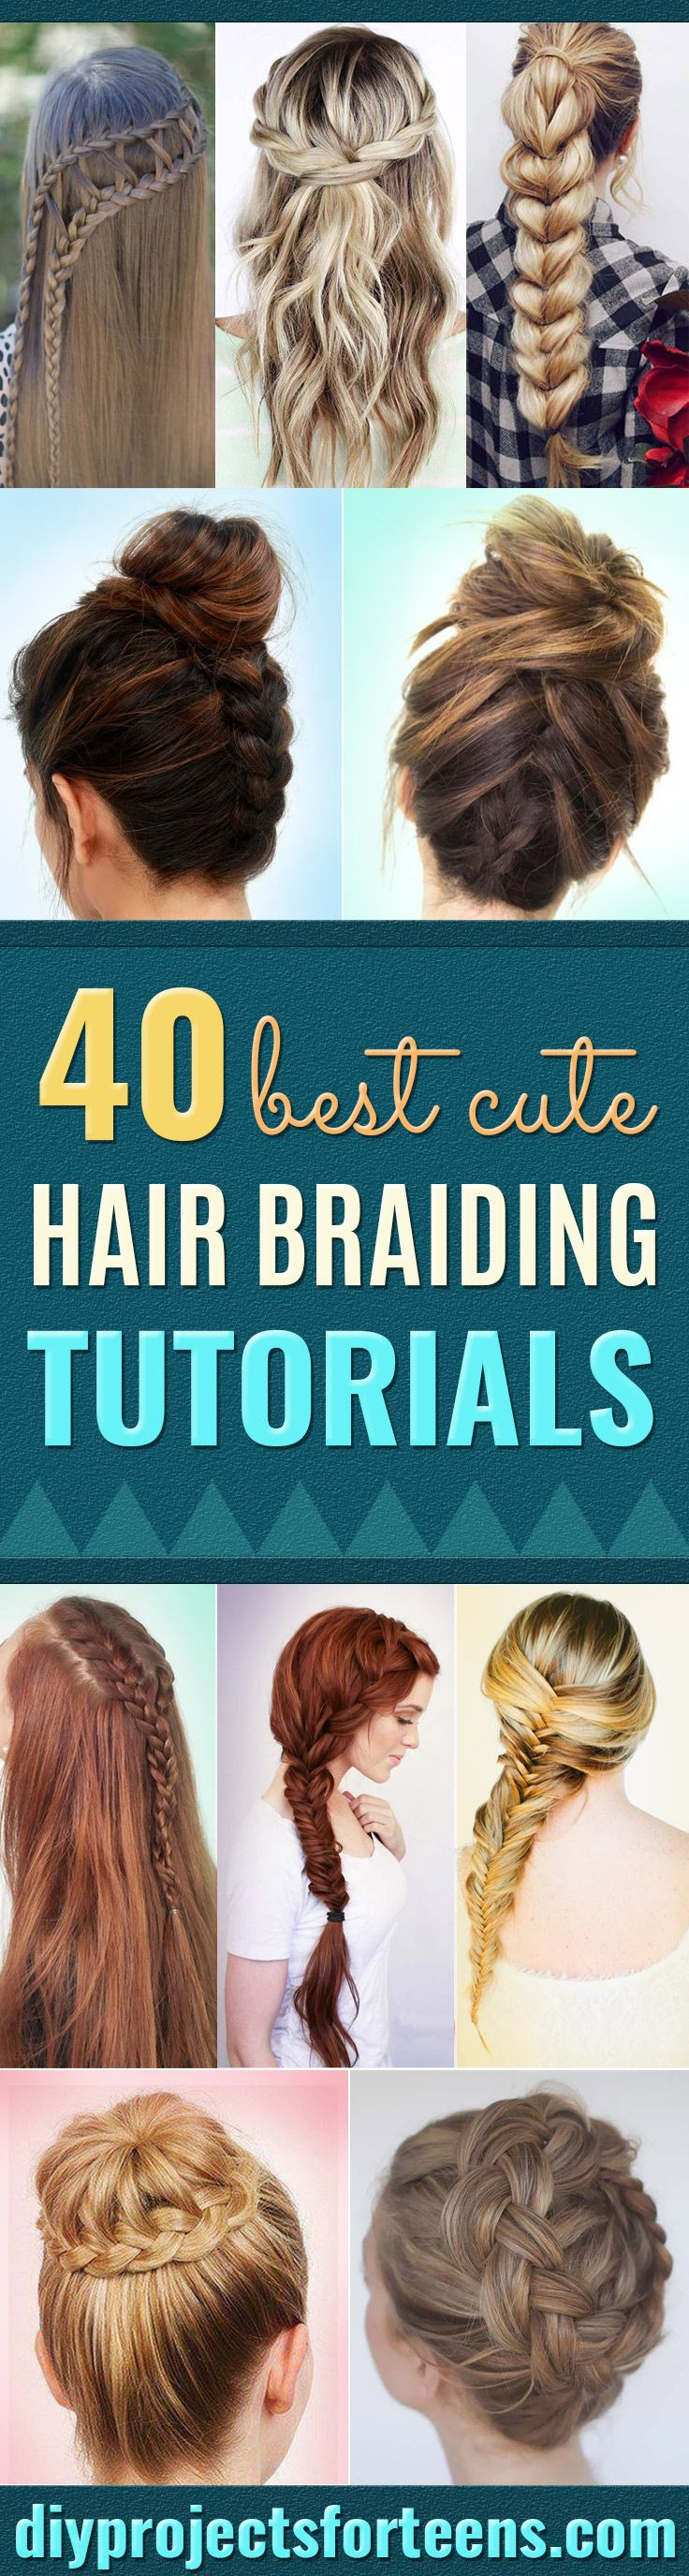 53 best Hairstyles images on Pinterest